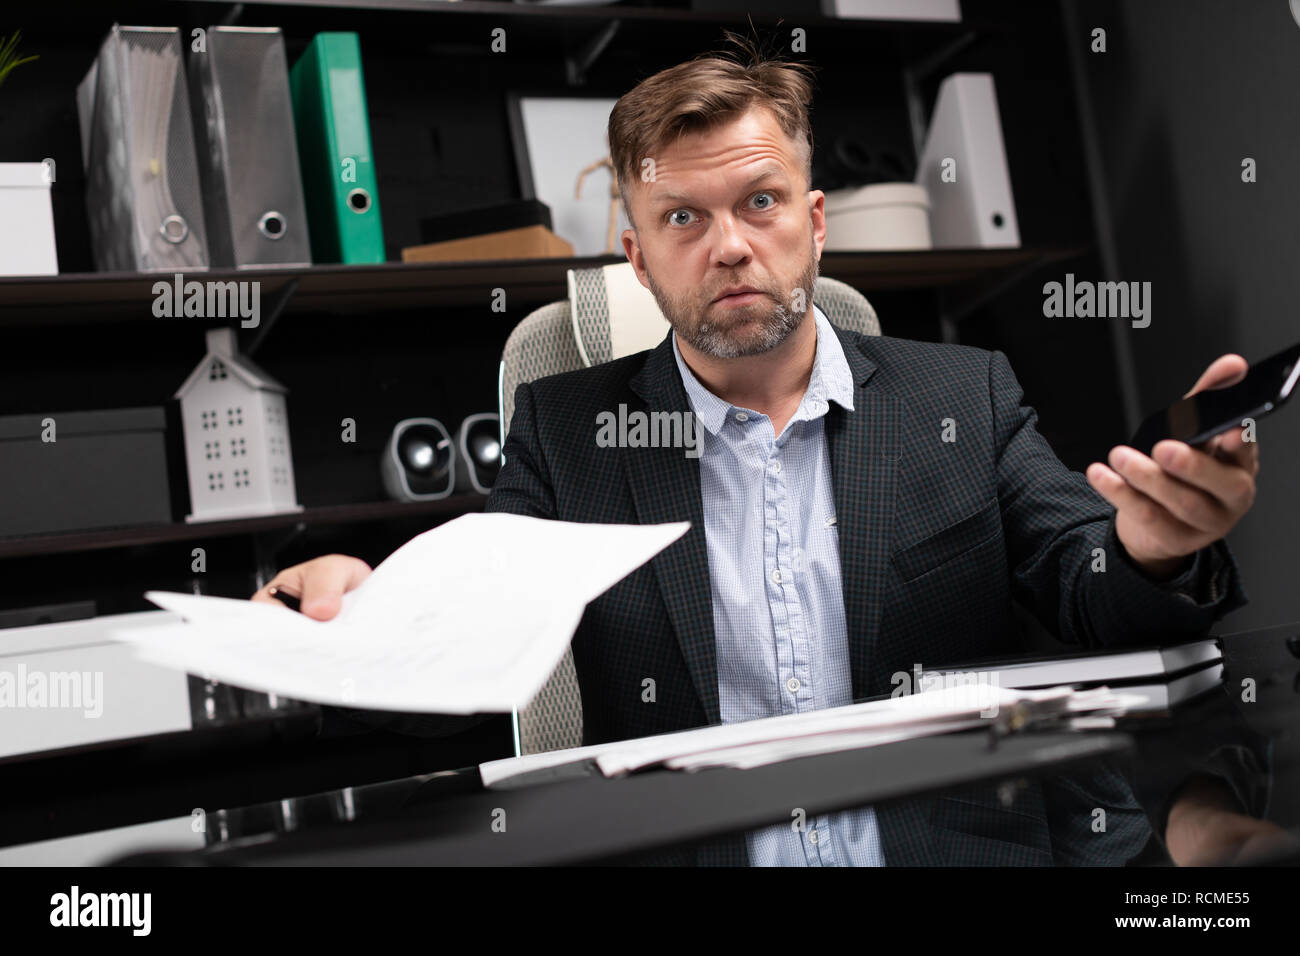 young man in business clothes working at computer Desk with phone and documents - Stock Image